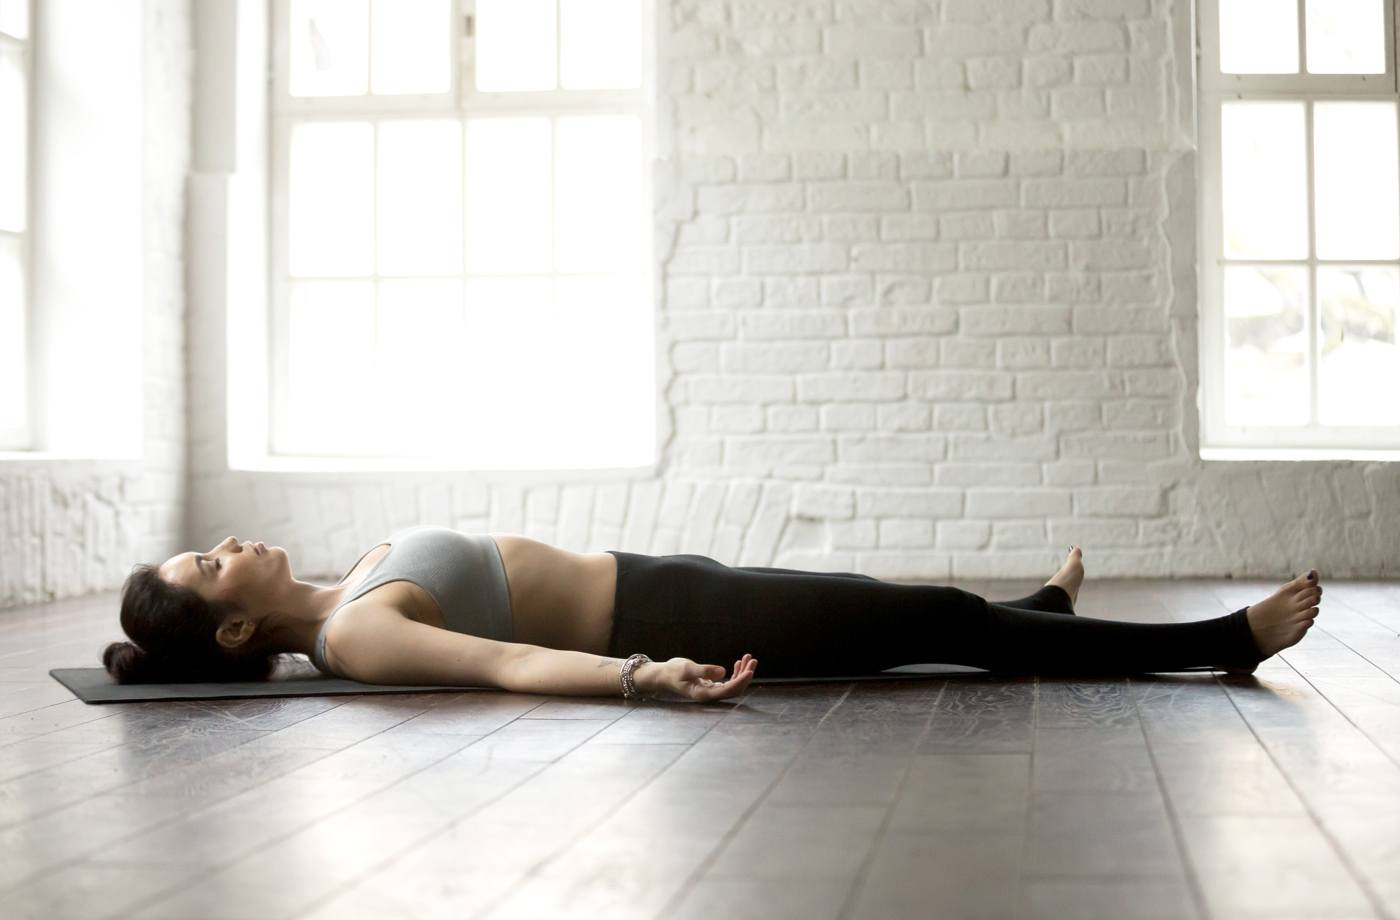 Thumbnail for Why you should do Savasana after *every* workout, according to science